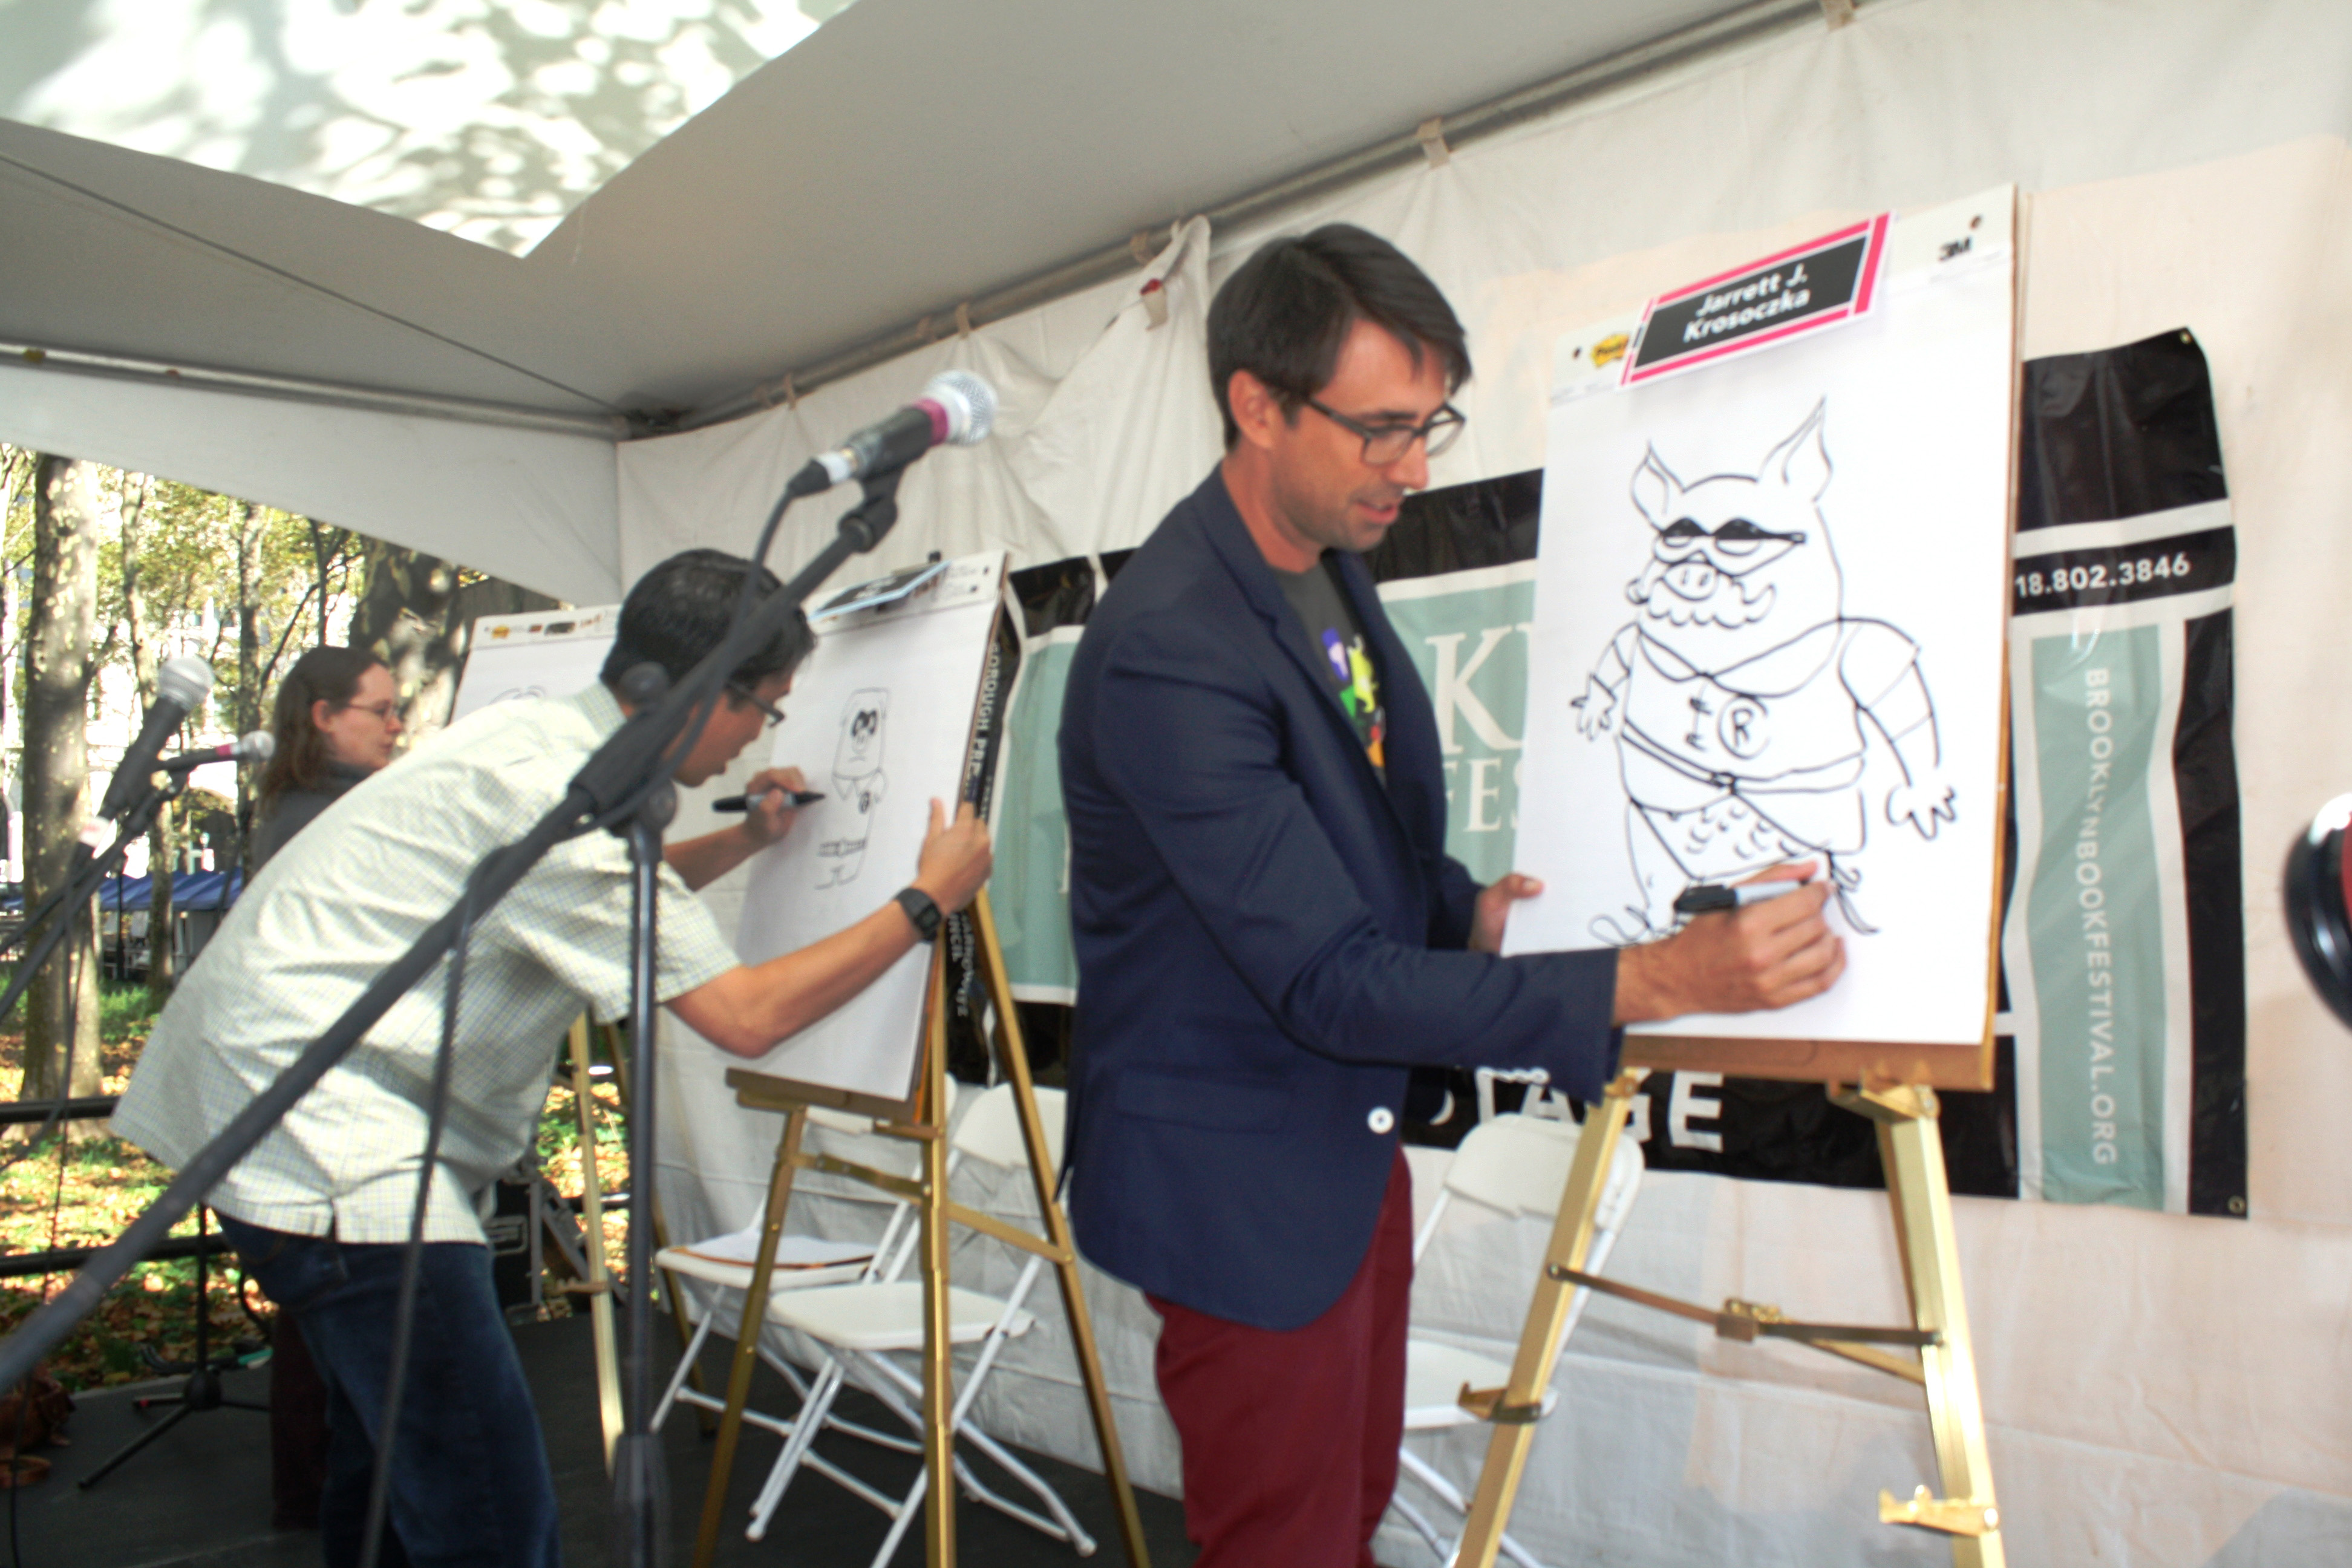 Children's cartoonists Jarrett Krosoczka, Gene Yang and Raina Telgemeier in the Comic Quick Draw for kids (Photo: Saranya Kapur)